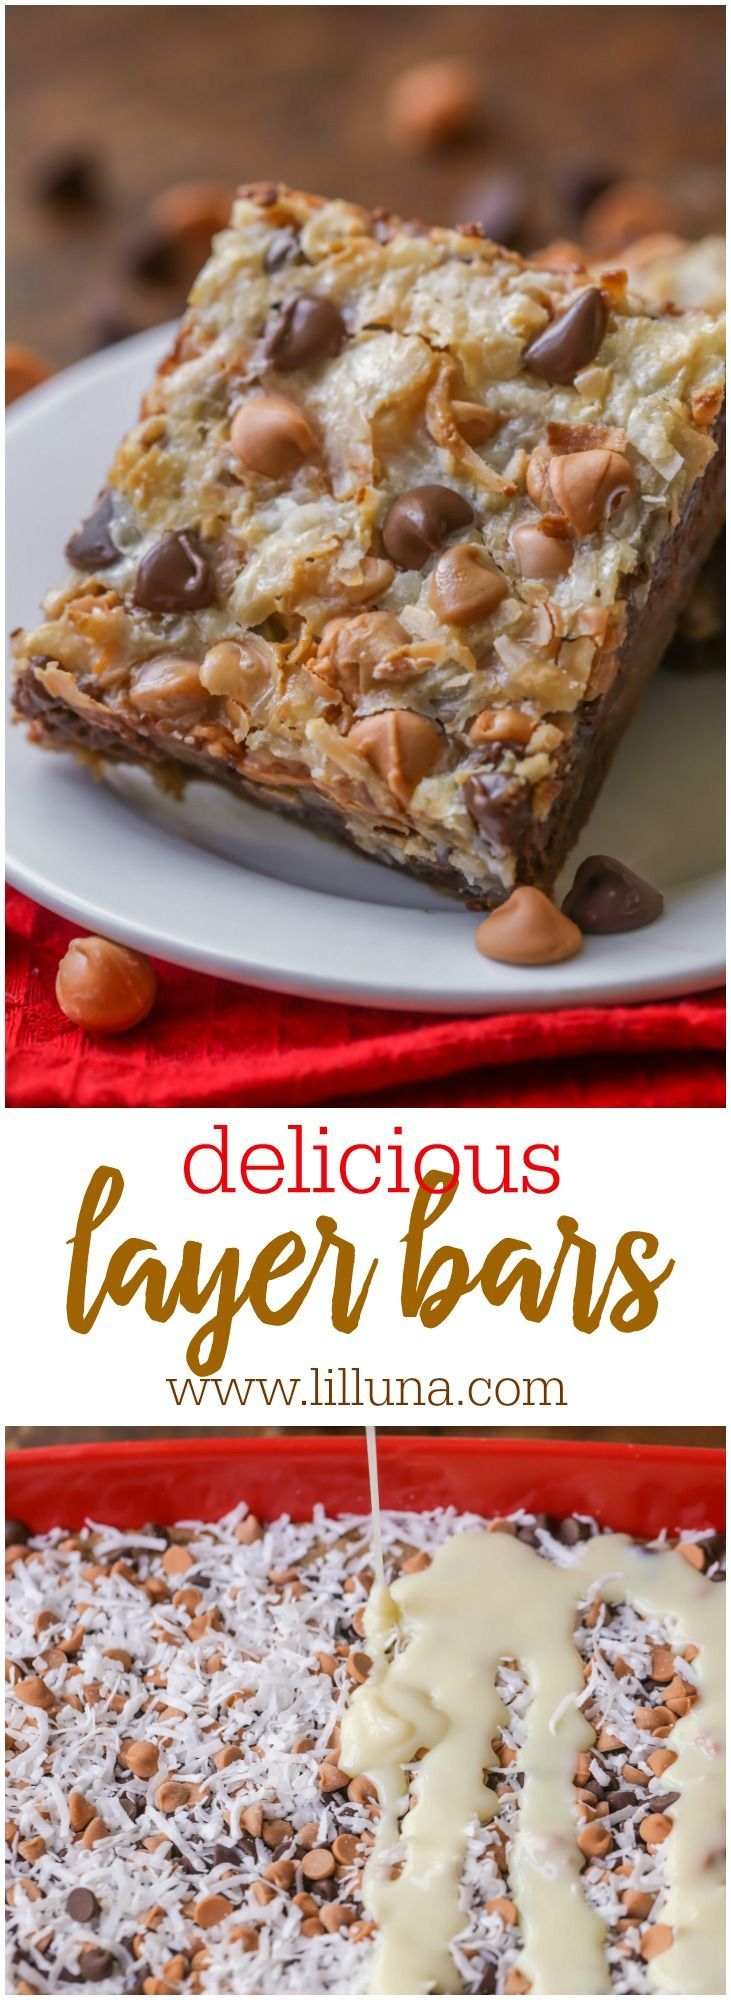 Luscious Layer Bars - a simple dessert idea topped with chocolate and butterscotch chips, coconut and sweetened condensed milk! { lilluna.com }